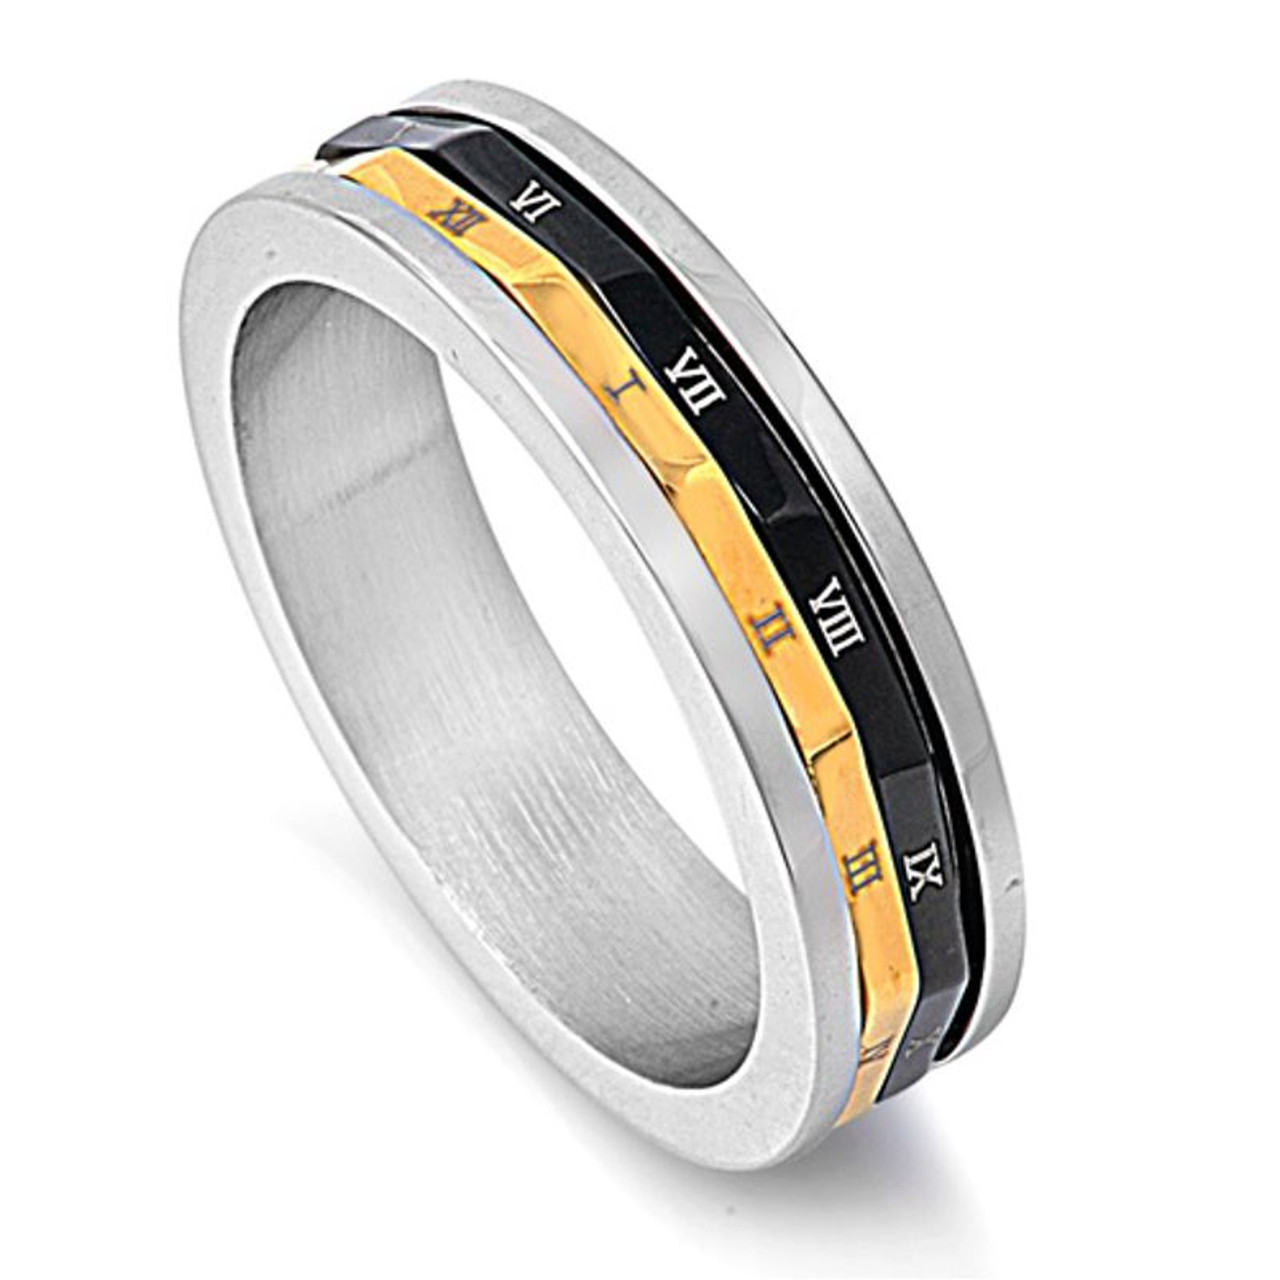 STAINLESS STEEL Ring Band with ROMAN NUMERAL Accents size 12